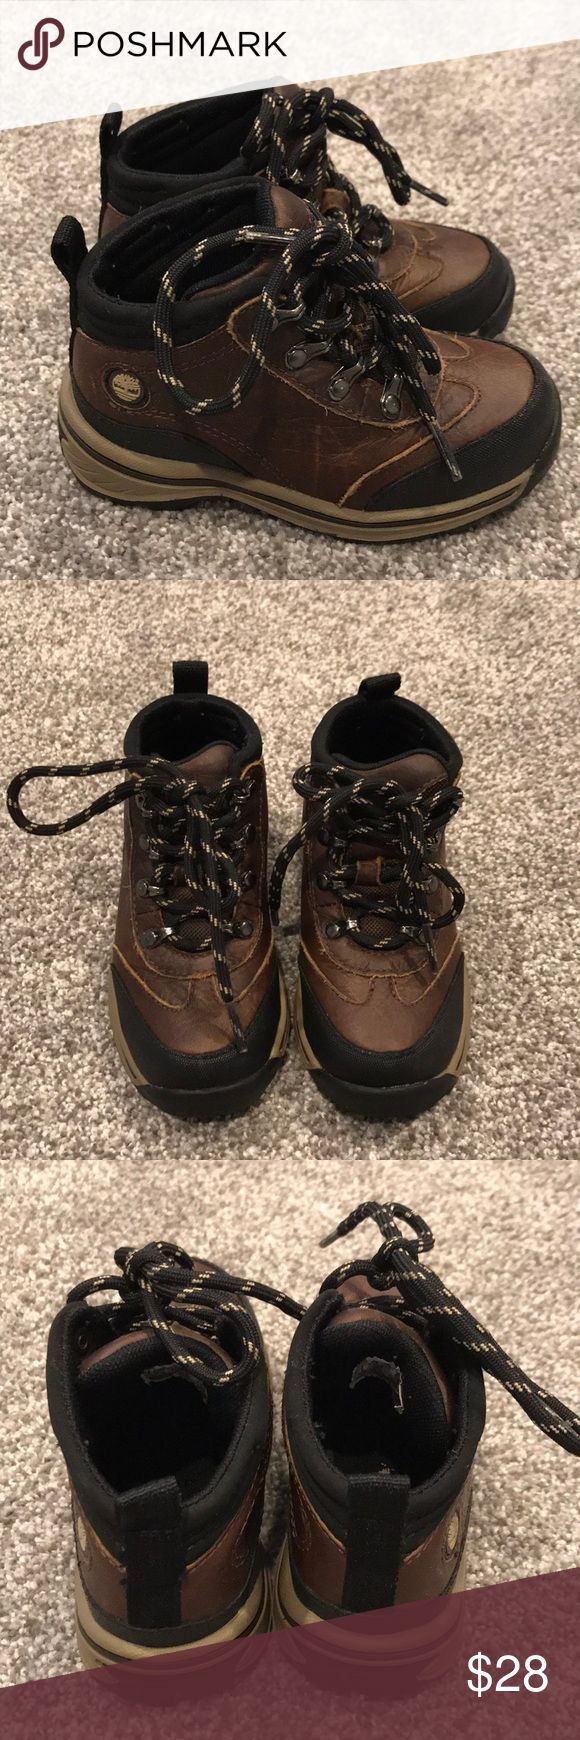 Toddler Timberland Boots Toddler Lace Up Timberland Boots. Brown Leather With Black And Tan Rubber Sole. Worn In Not Worn Out!! Great Condition! Timberland Shoes Boots